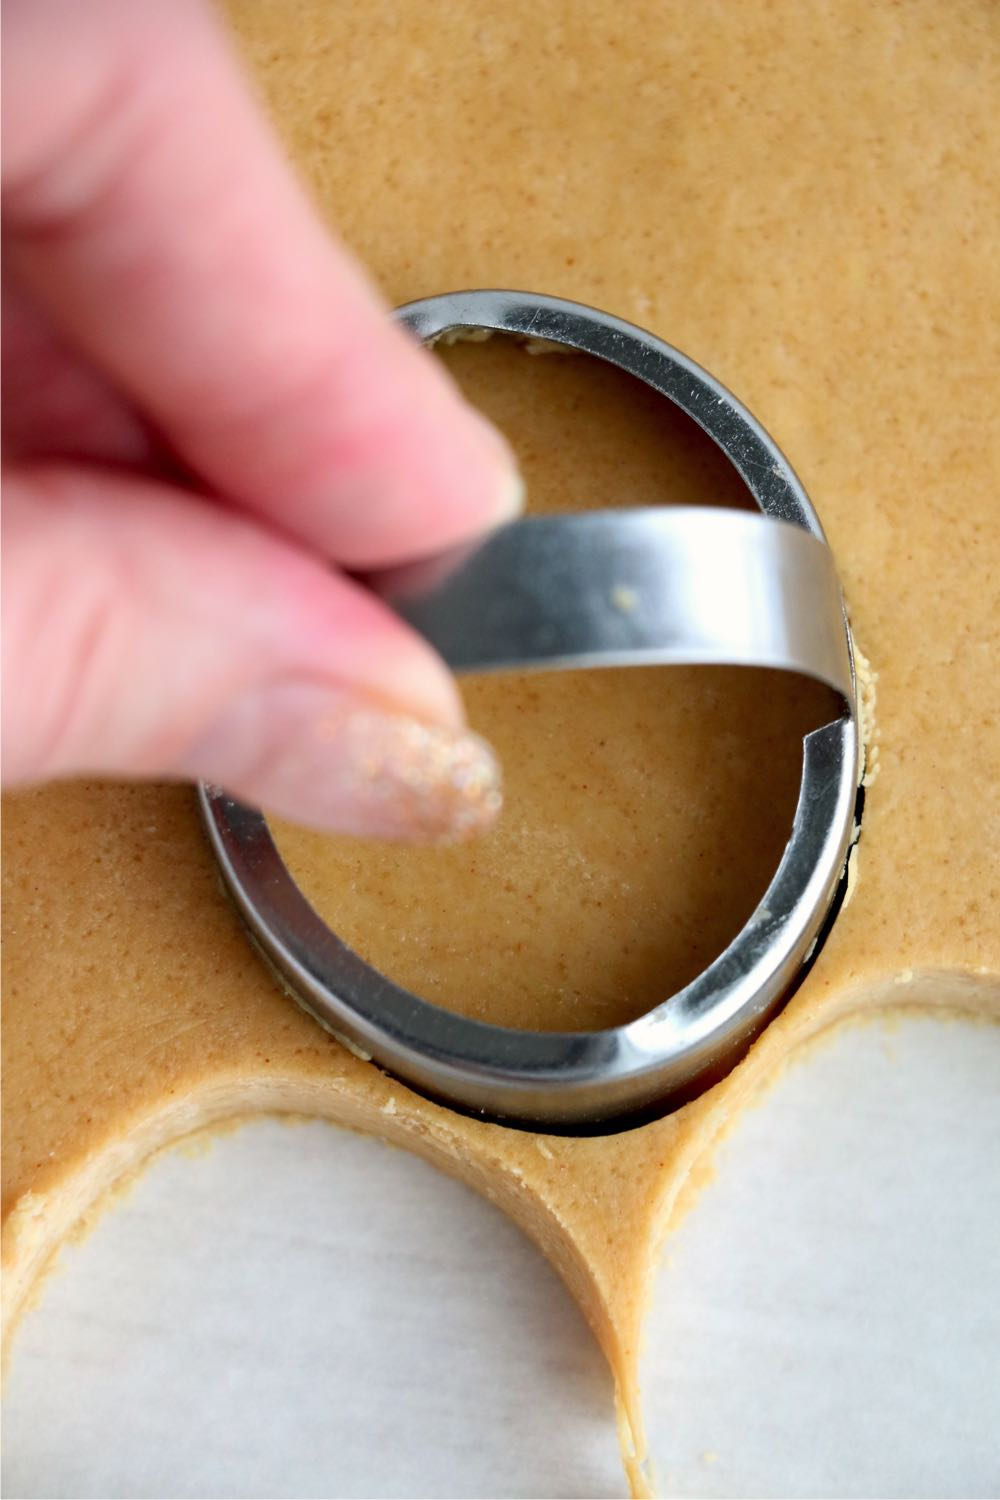 using an egg-shaped cookie cutter to cut out dough